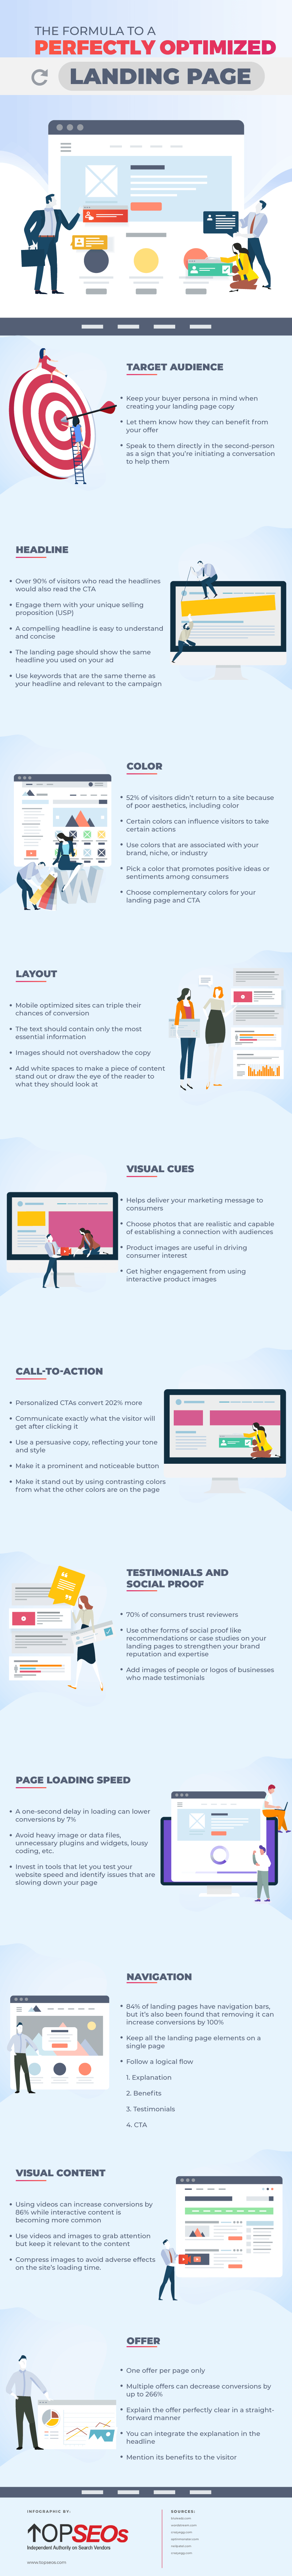 A graphic detailing how to create and optimise your website landing pages